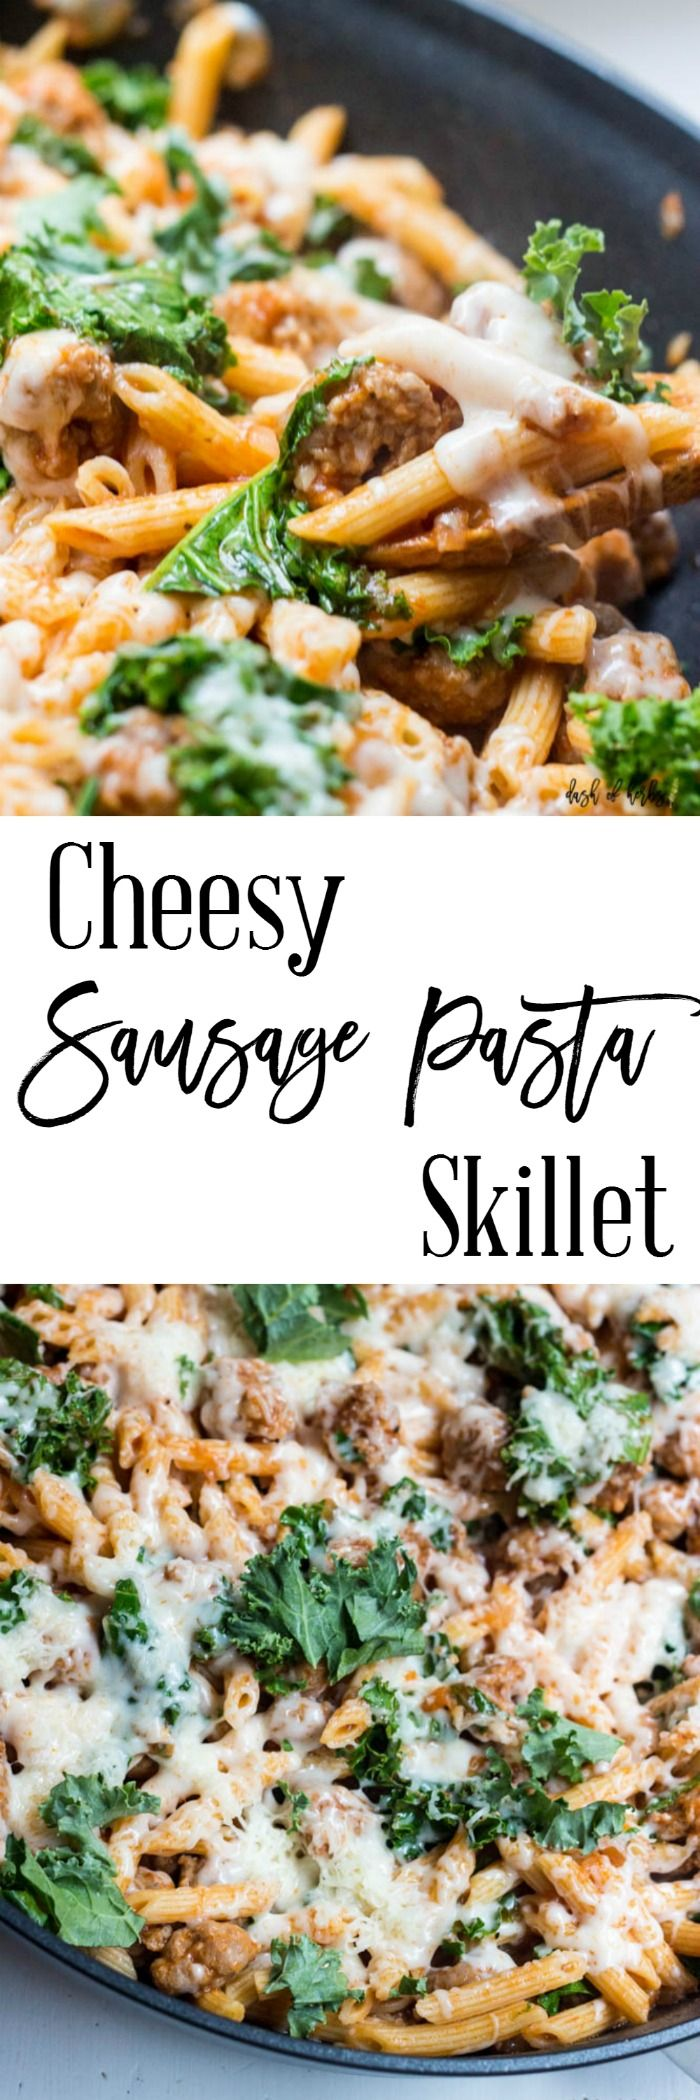 Cheesy Sausage Pasta Skillet - One pot meals and recipes are essential in our house. This cheesy sausage pasta skillet is perfect for those busy weeknights when you are busy but want a delicious meal.  http://dashofherbs.com/cheesy-sausage-pasta-skillet/